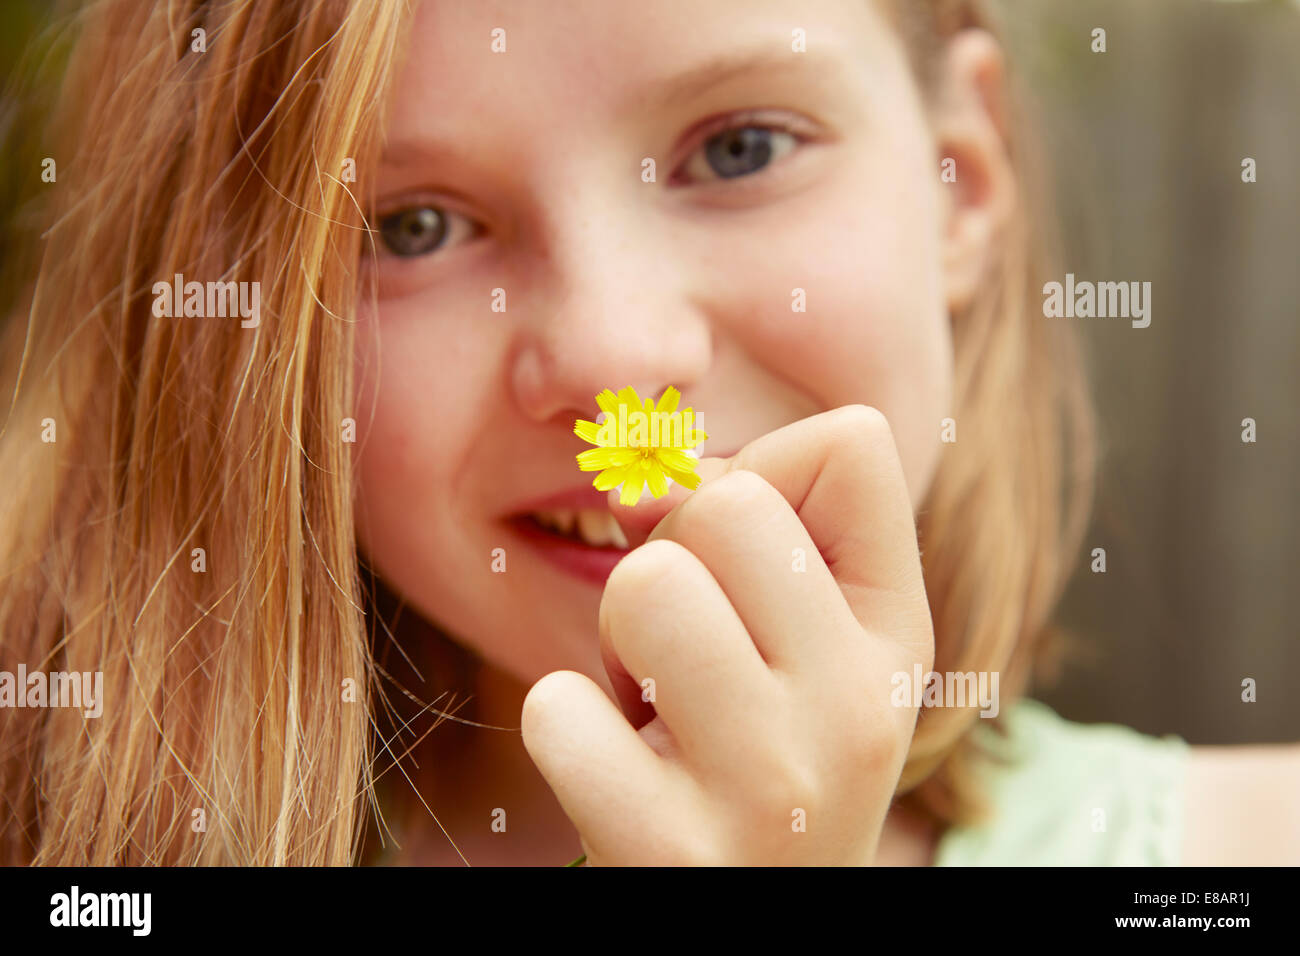 Close up portrait of girl holding dandelion flower Stock Photo